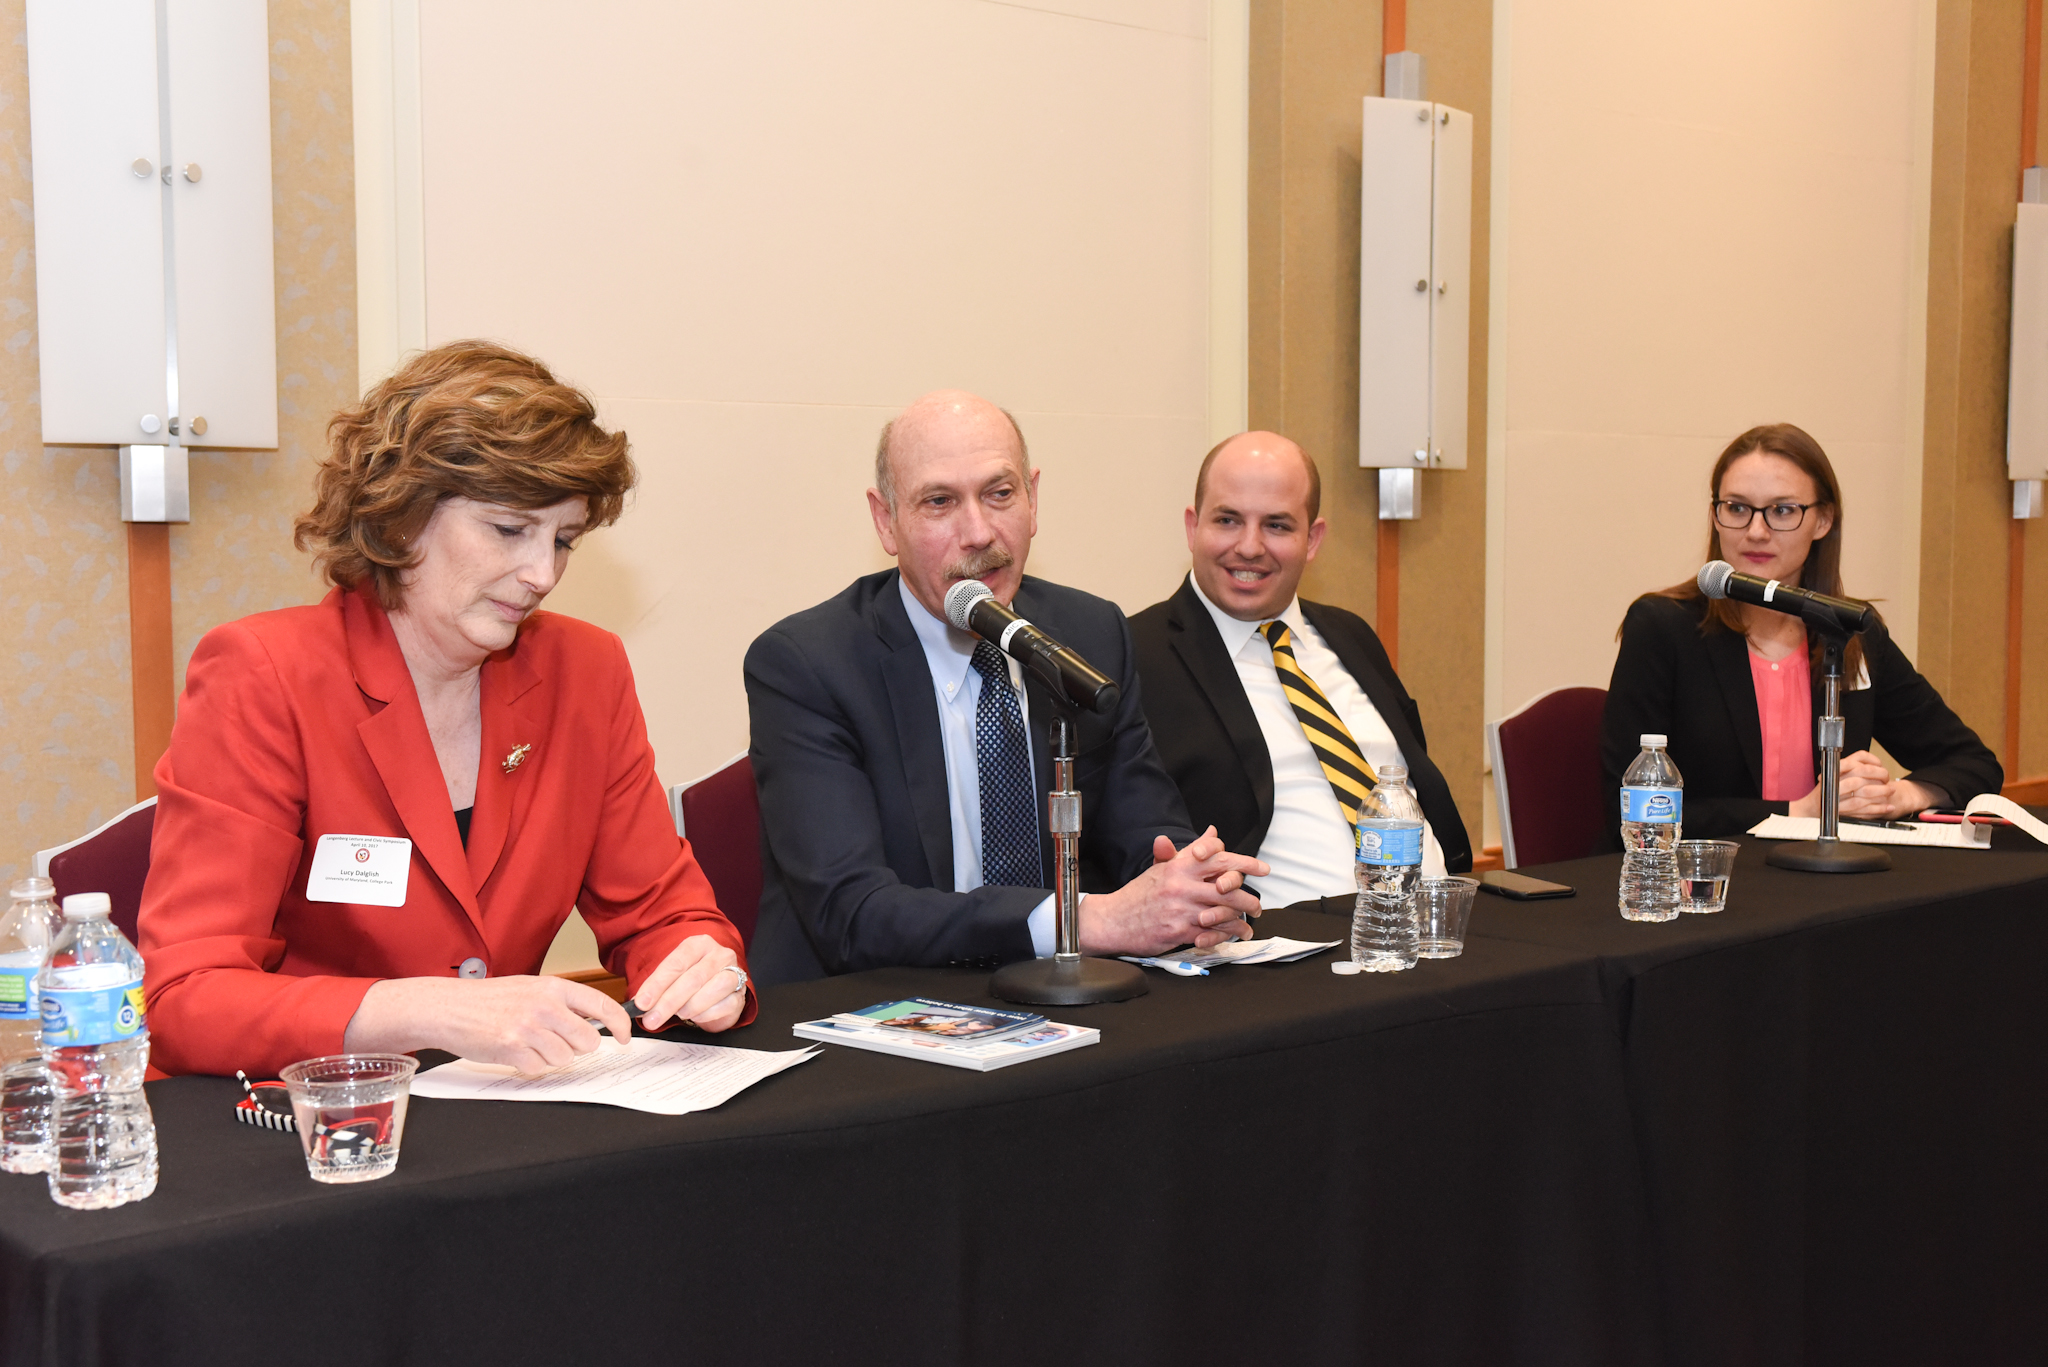 Civic Engagement Symposium - Image 1